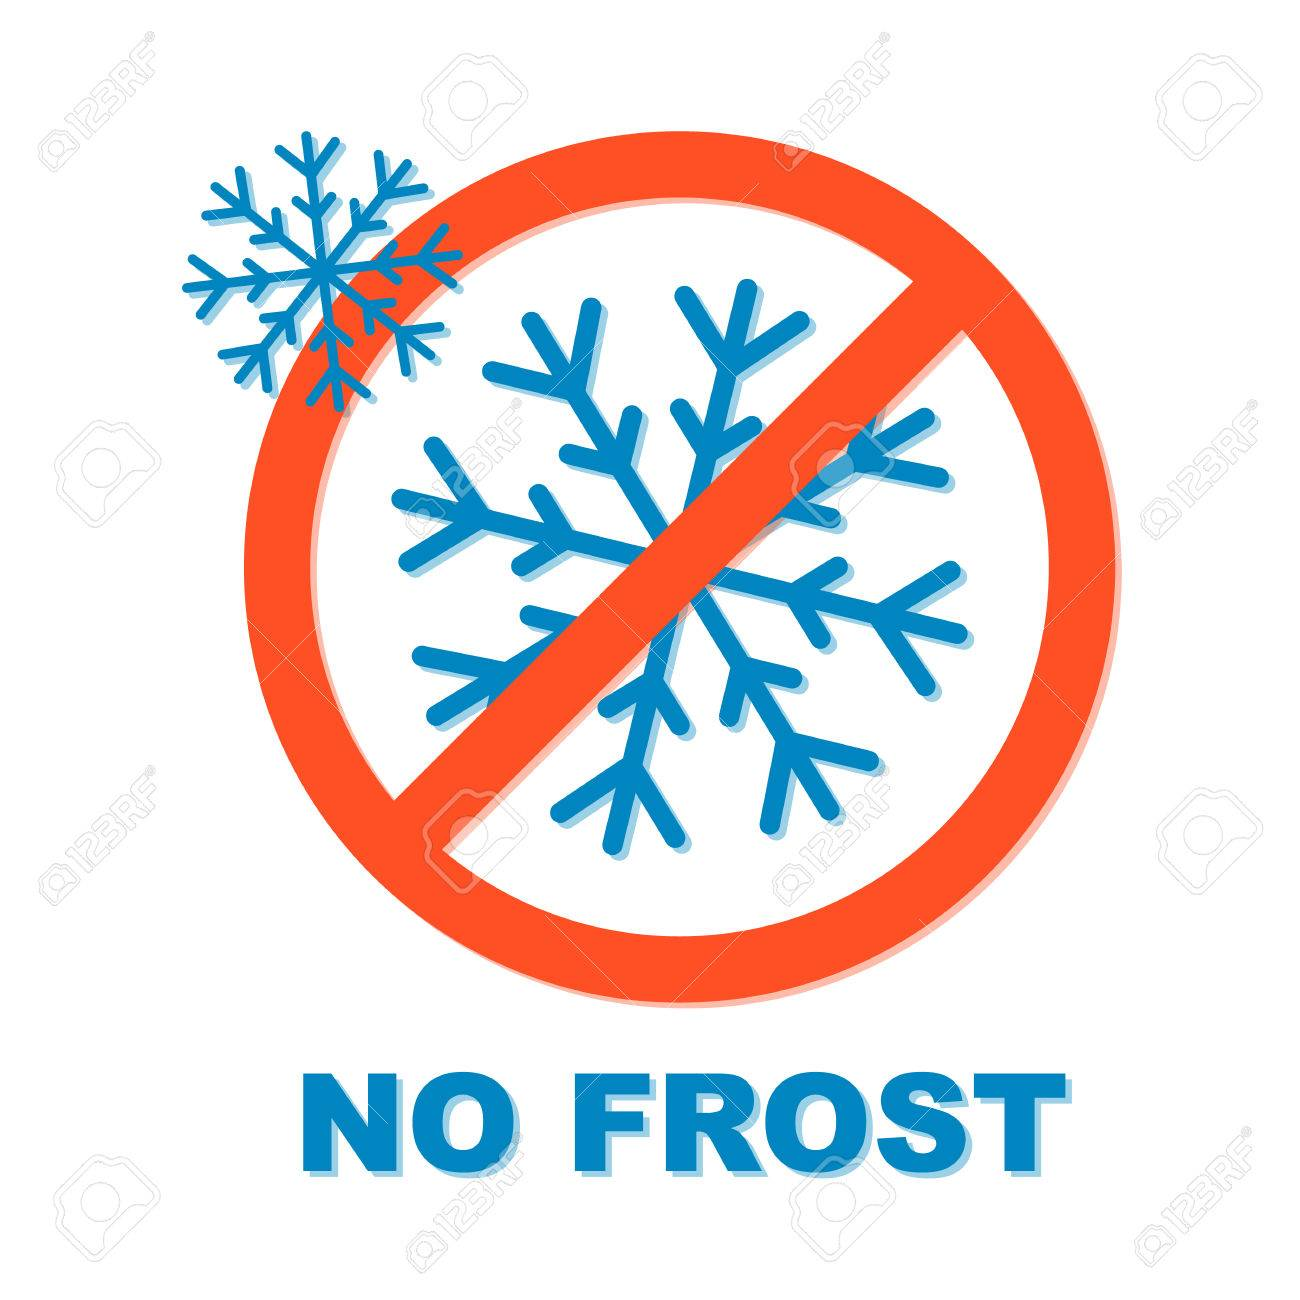 No Frost No Frost Design For The Vector